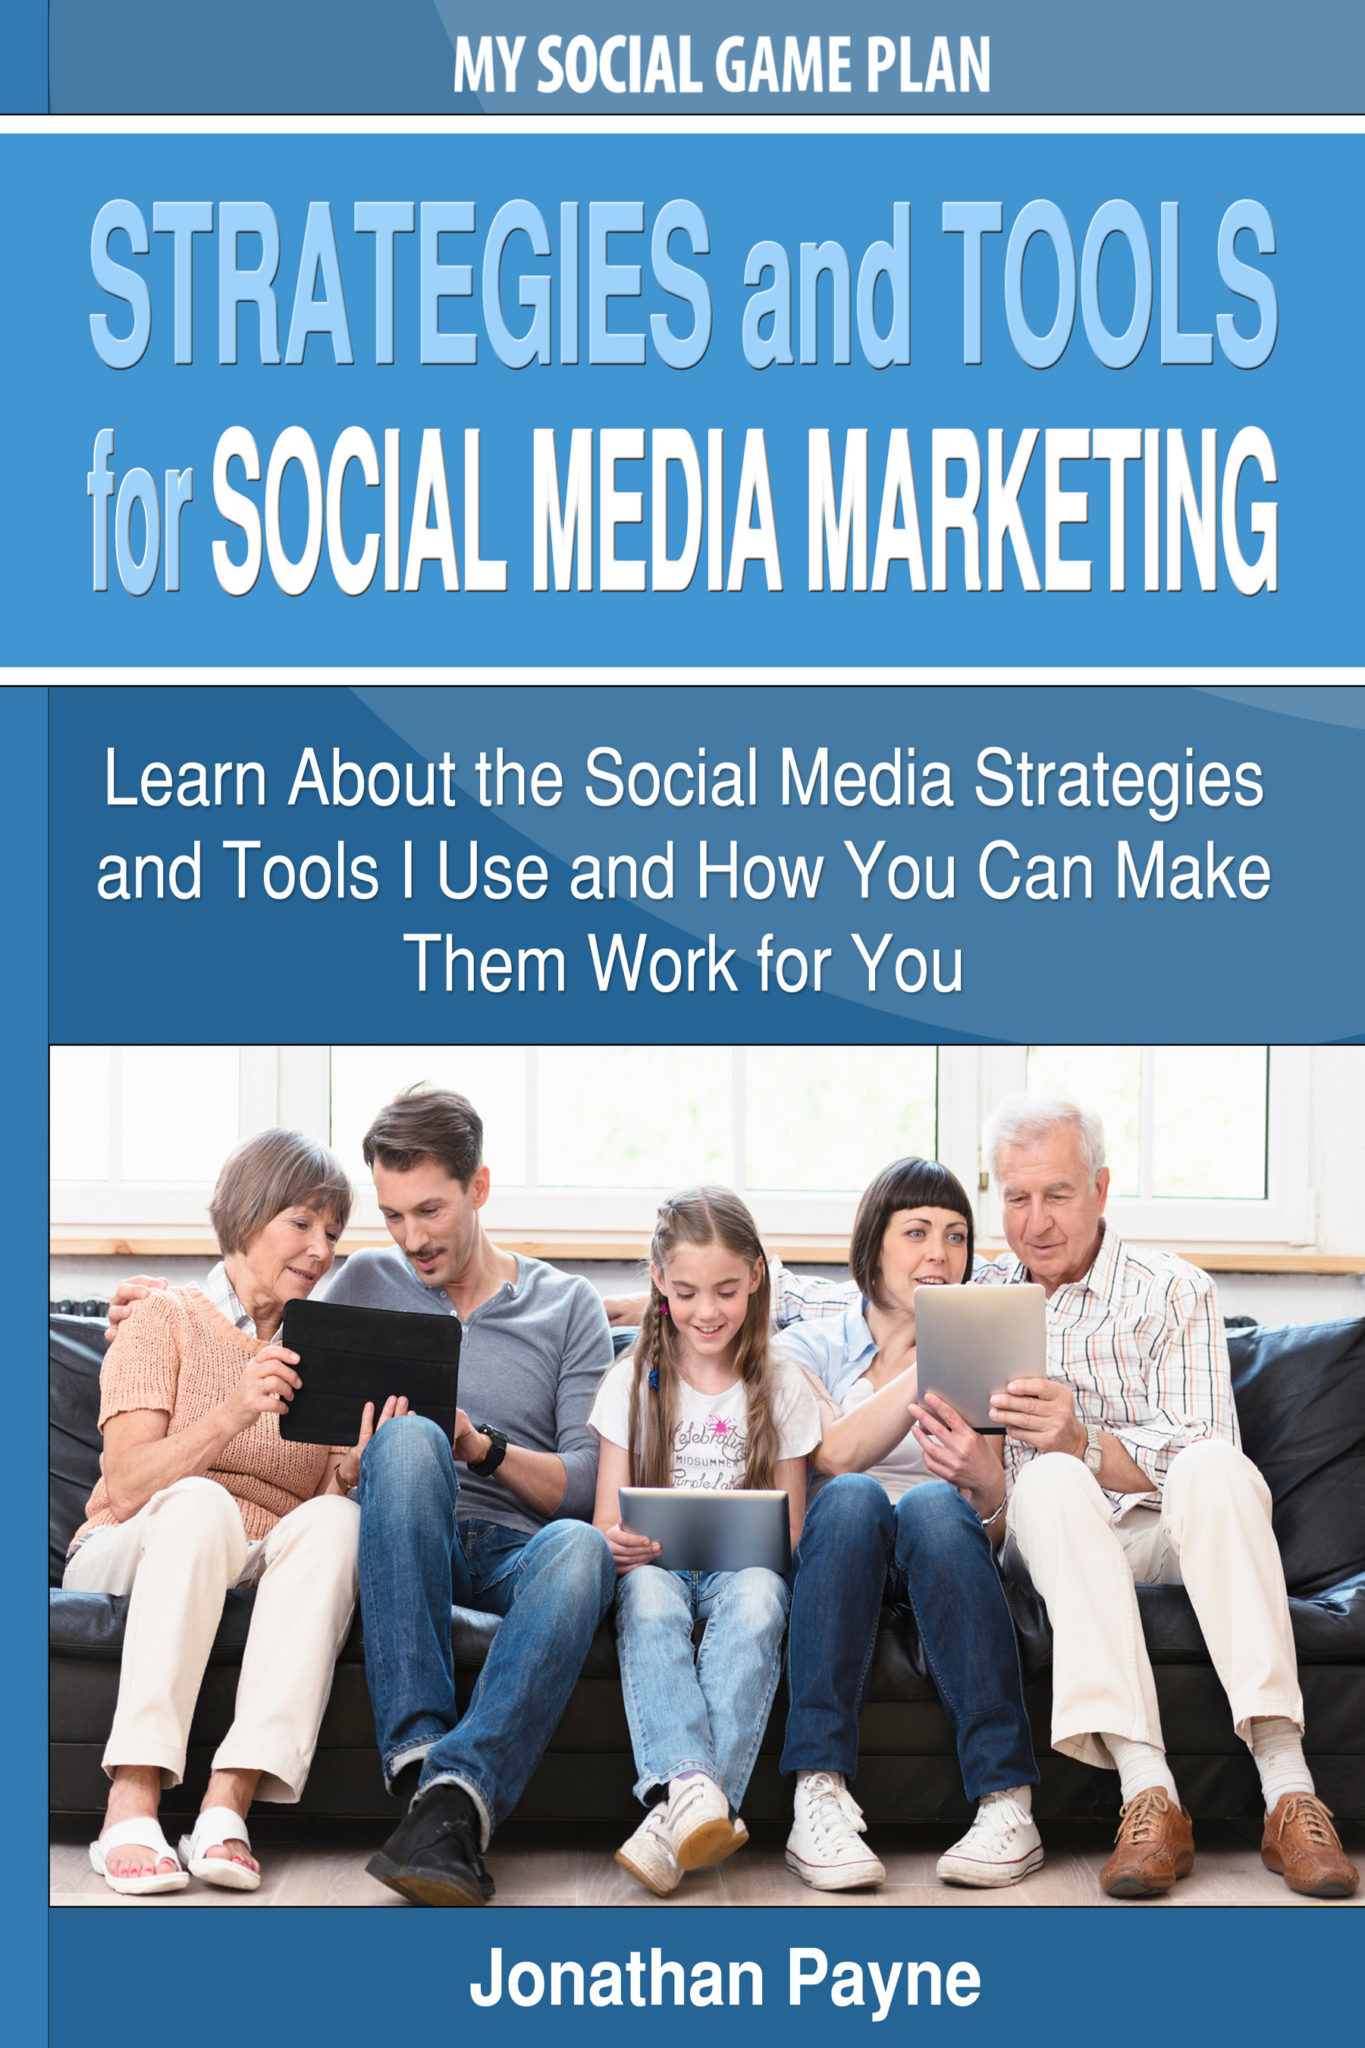 Social Media Marketing Strategy and Tools by Jonathan Payne